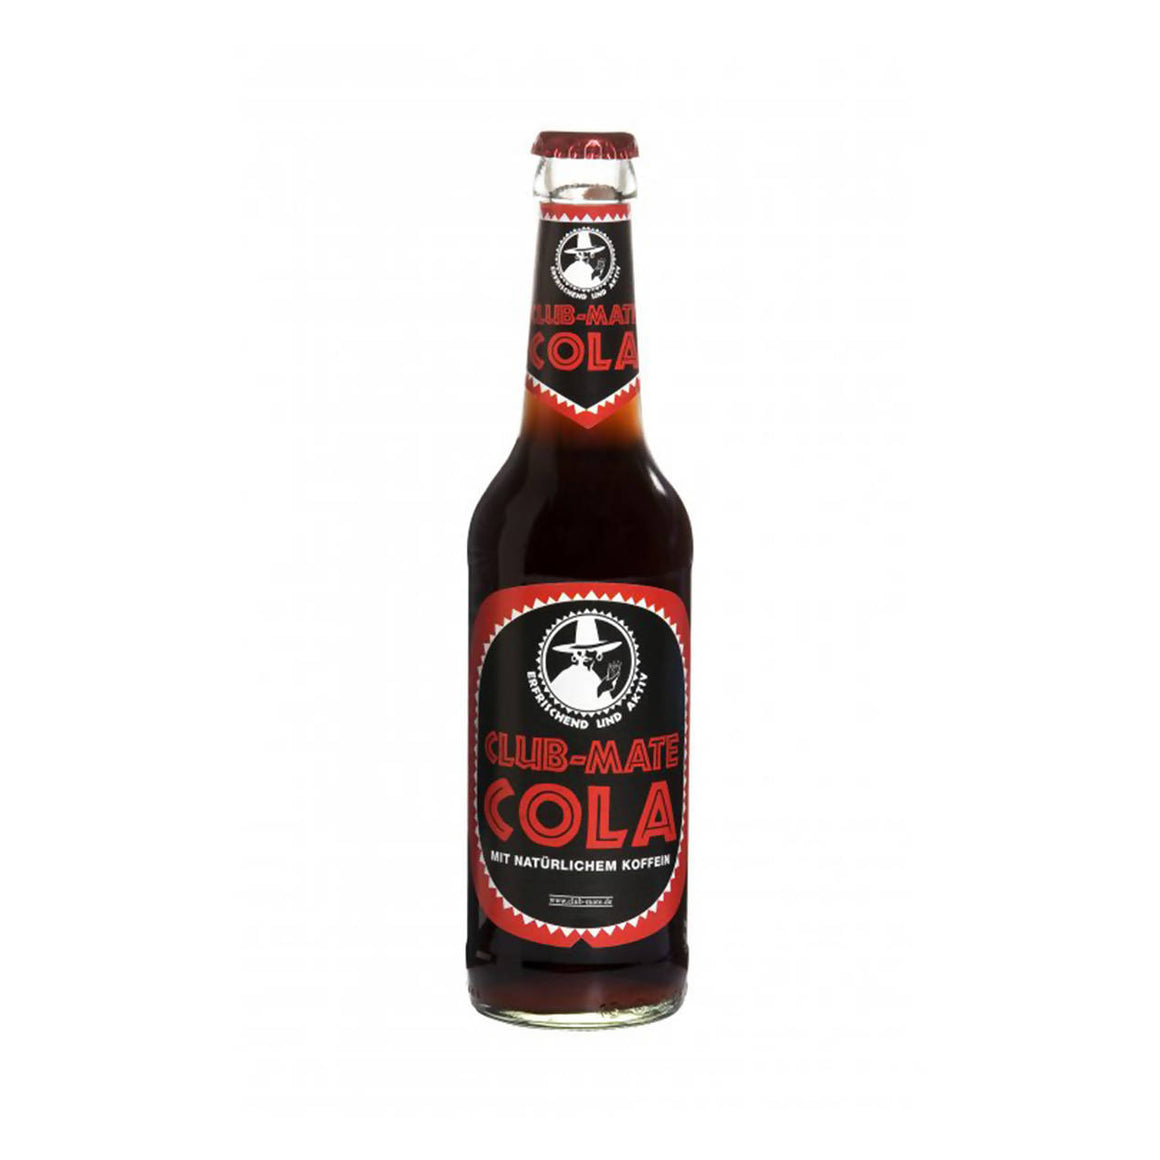 Club-mate Cola (20x330ml)